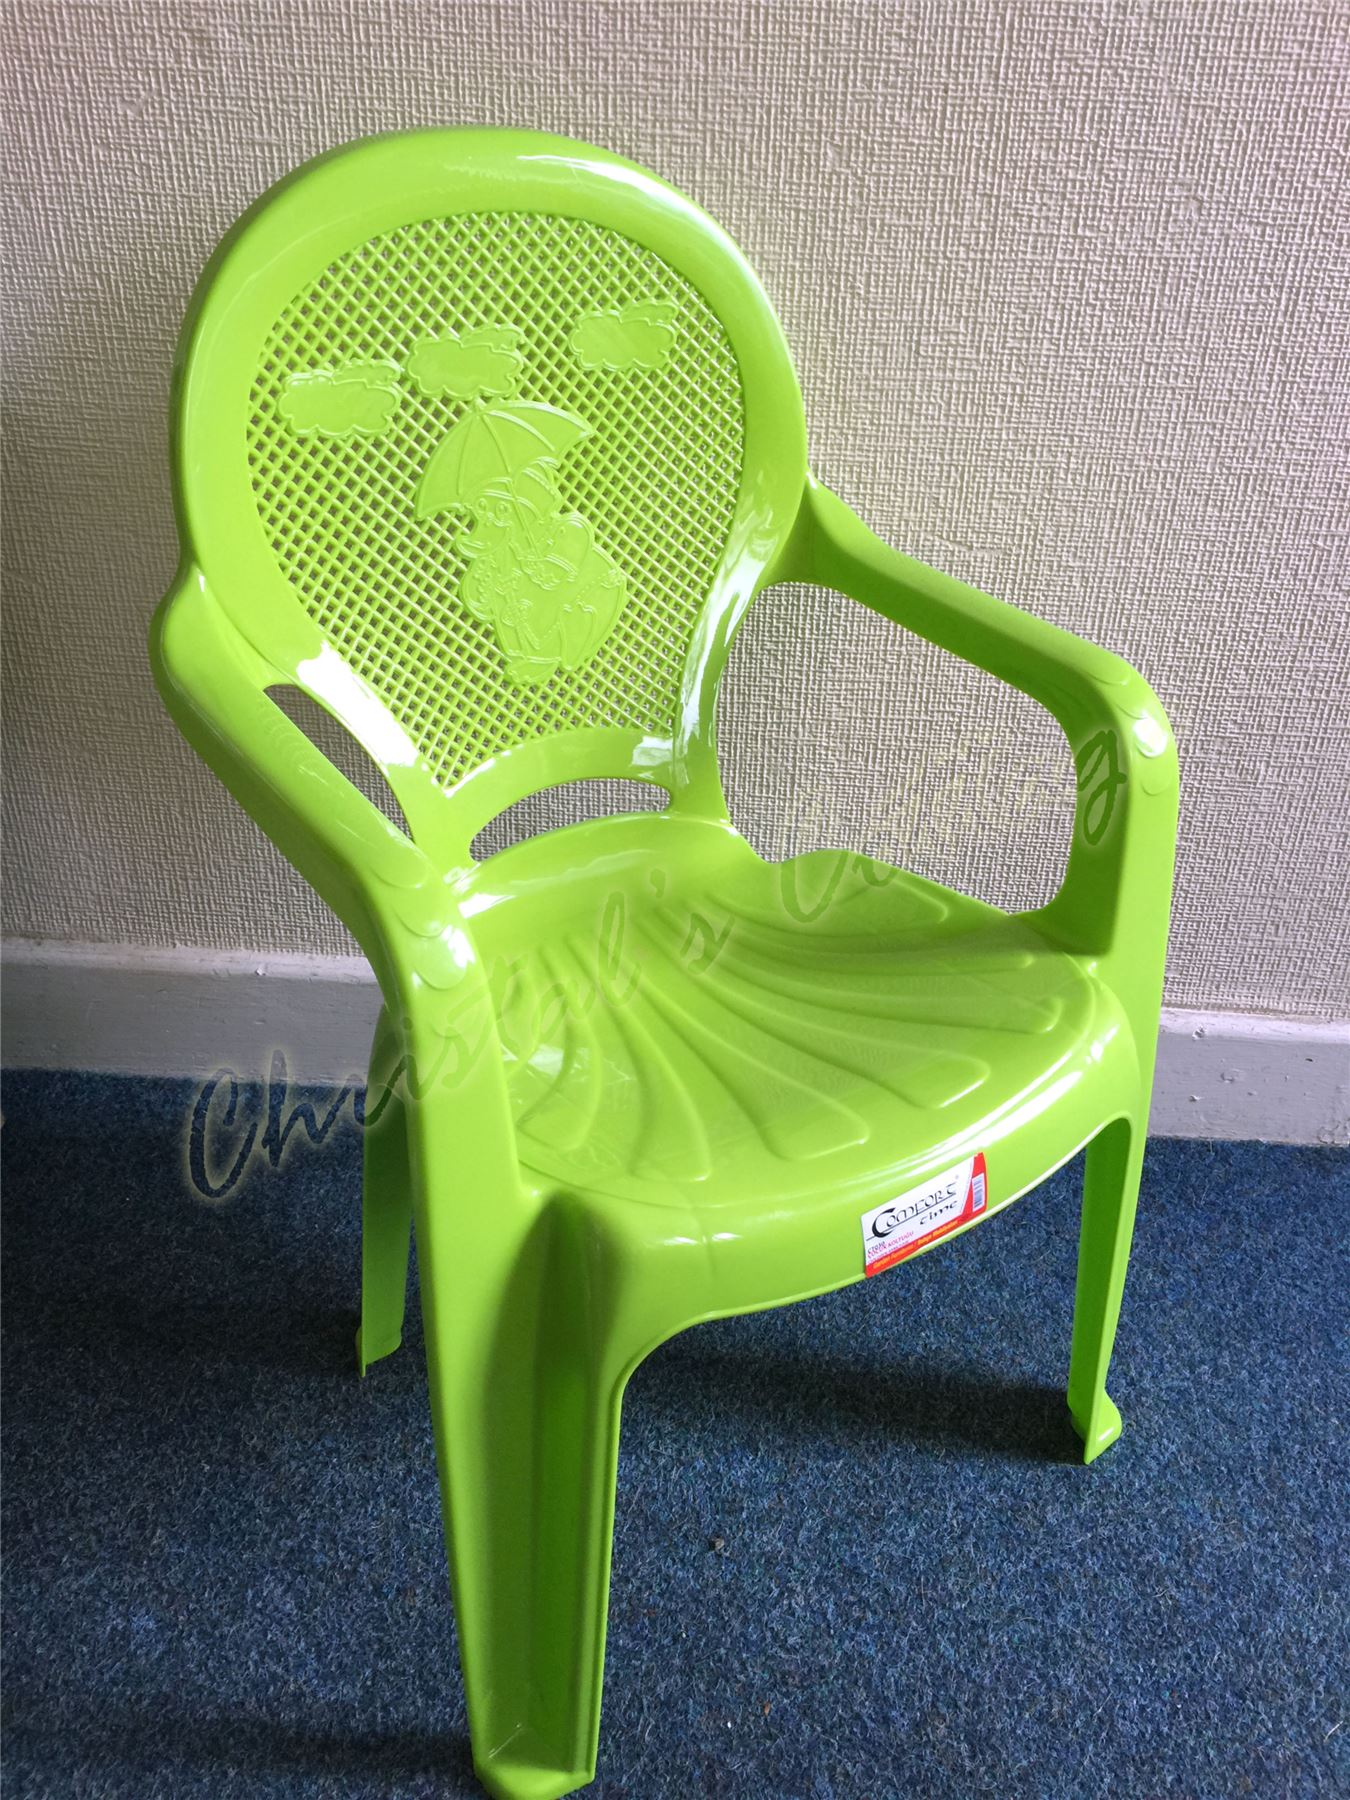 Plastic Toddler Chairs Kids Children Plastic Indoor Outdoor Stackable Garden